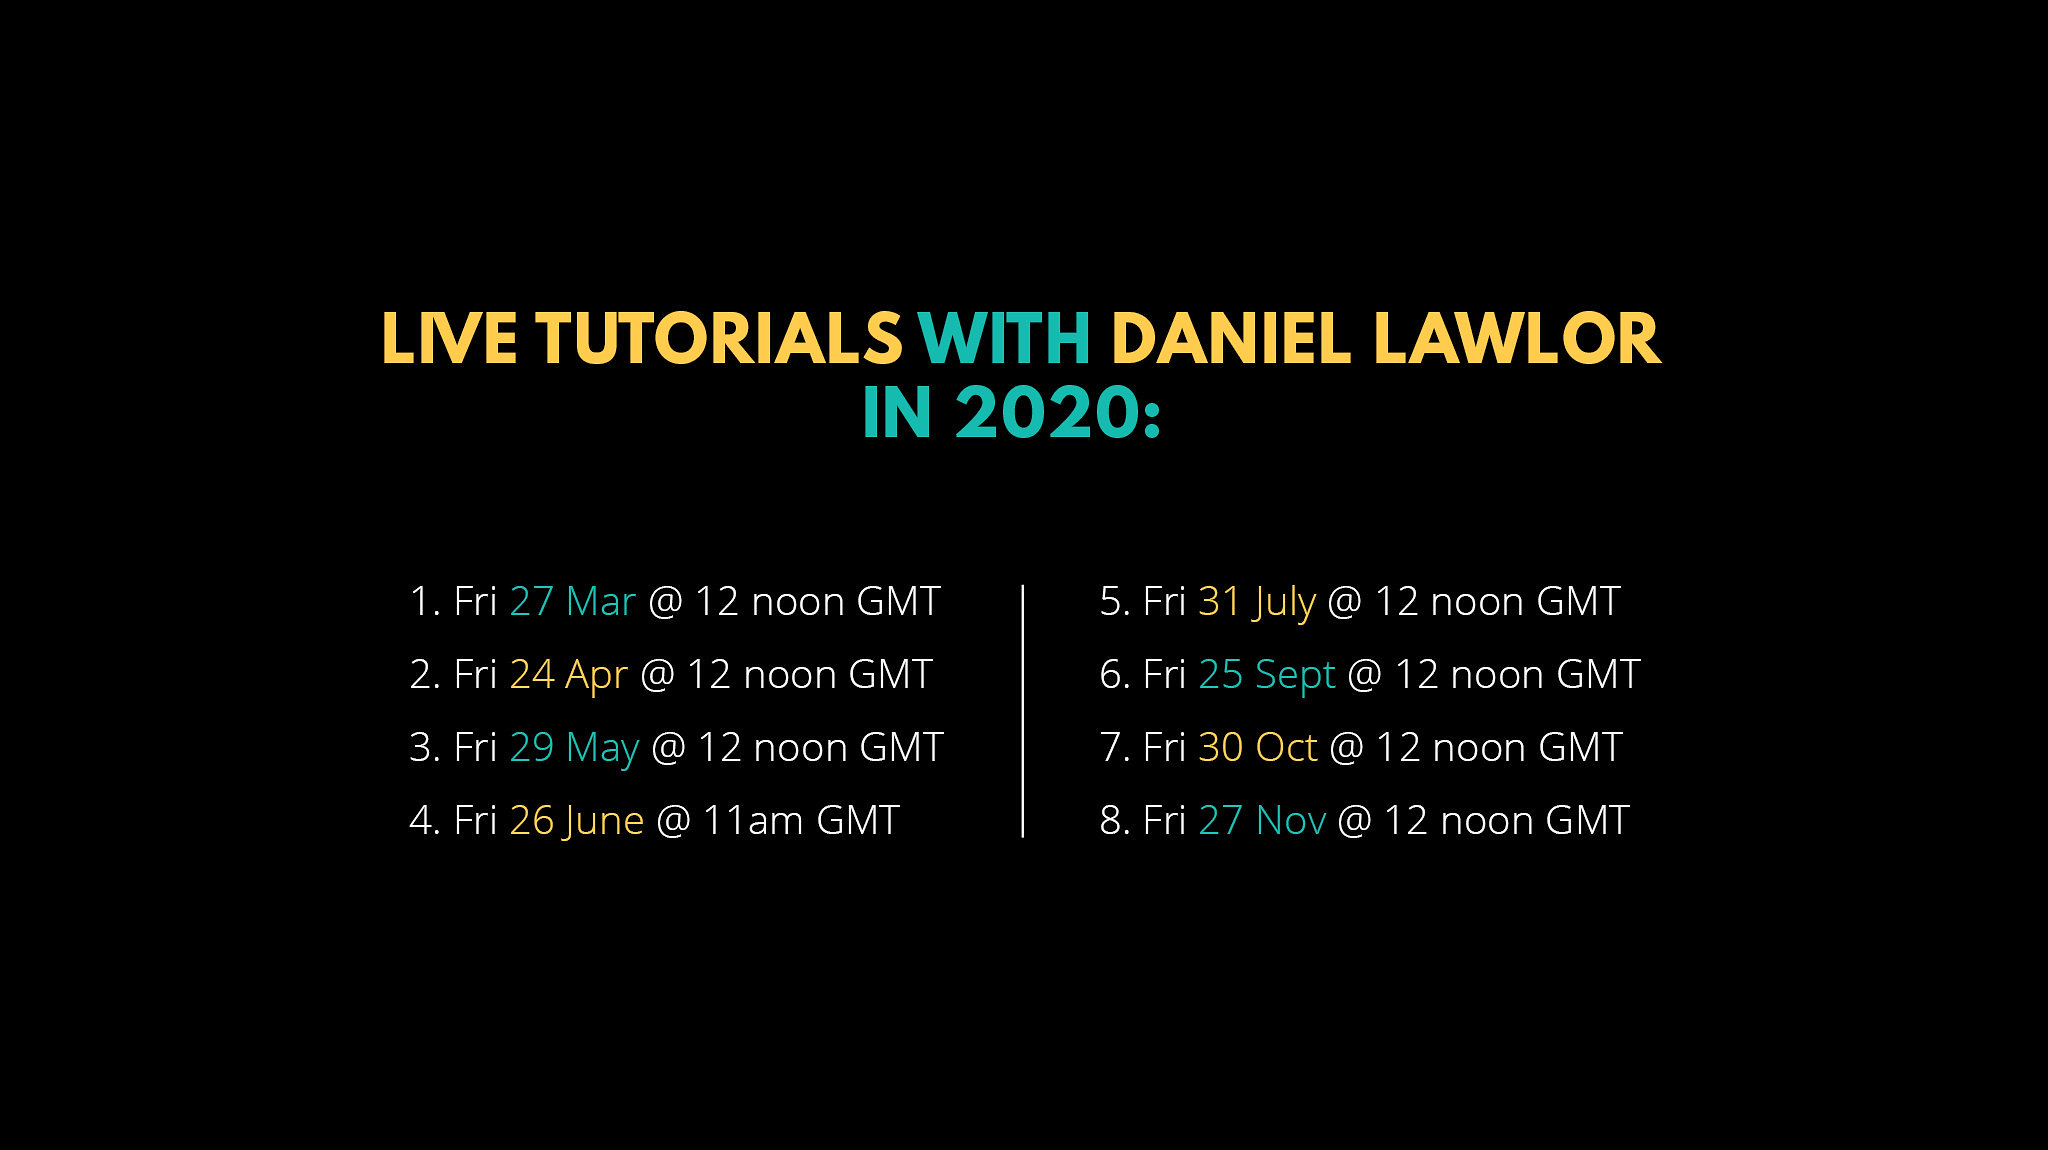 Live Tutorials with Daniel lawlor